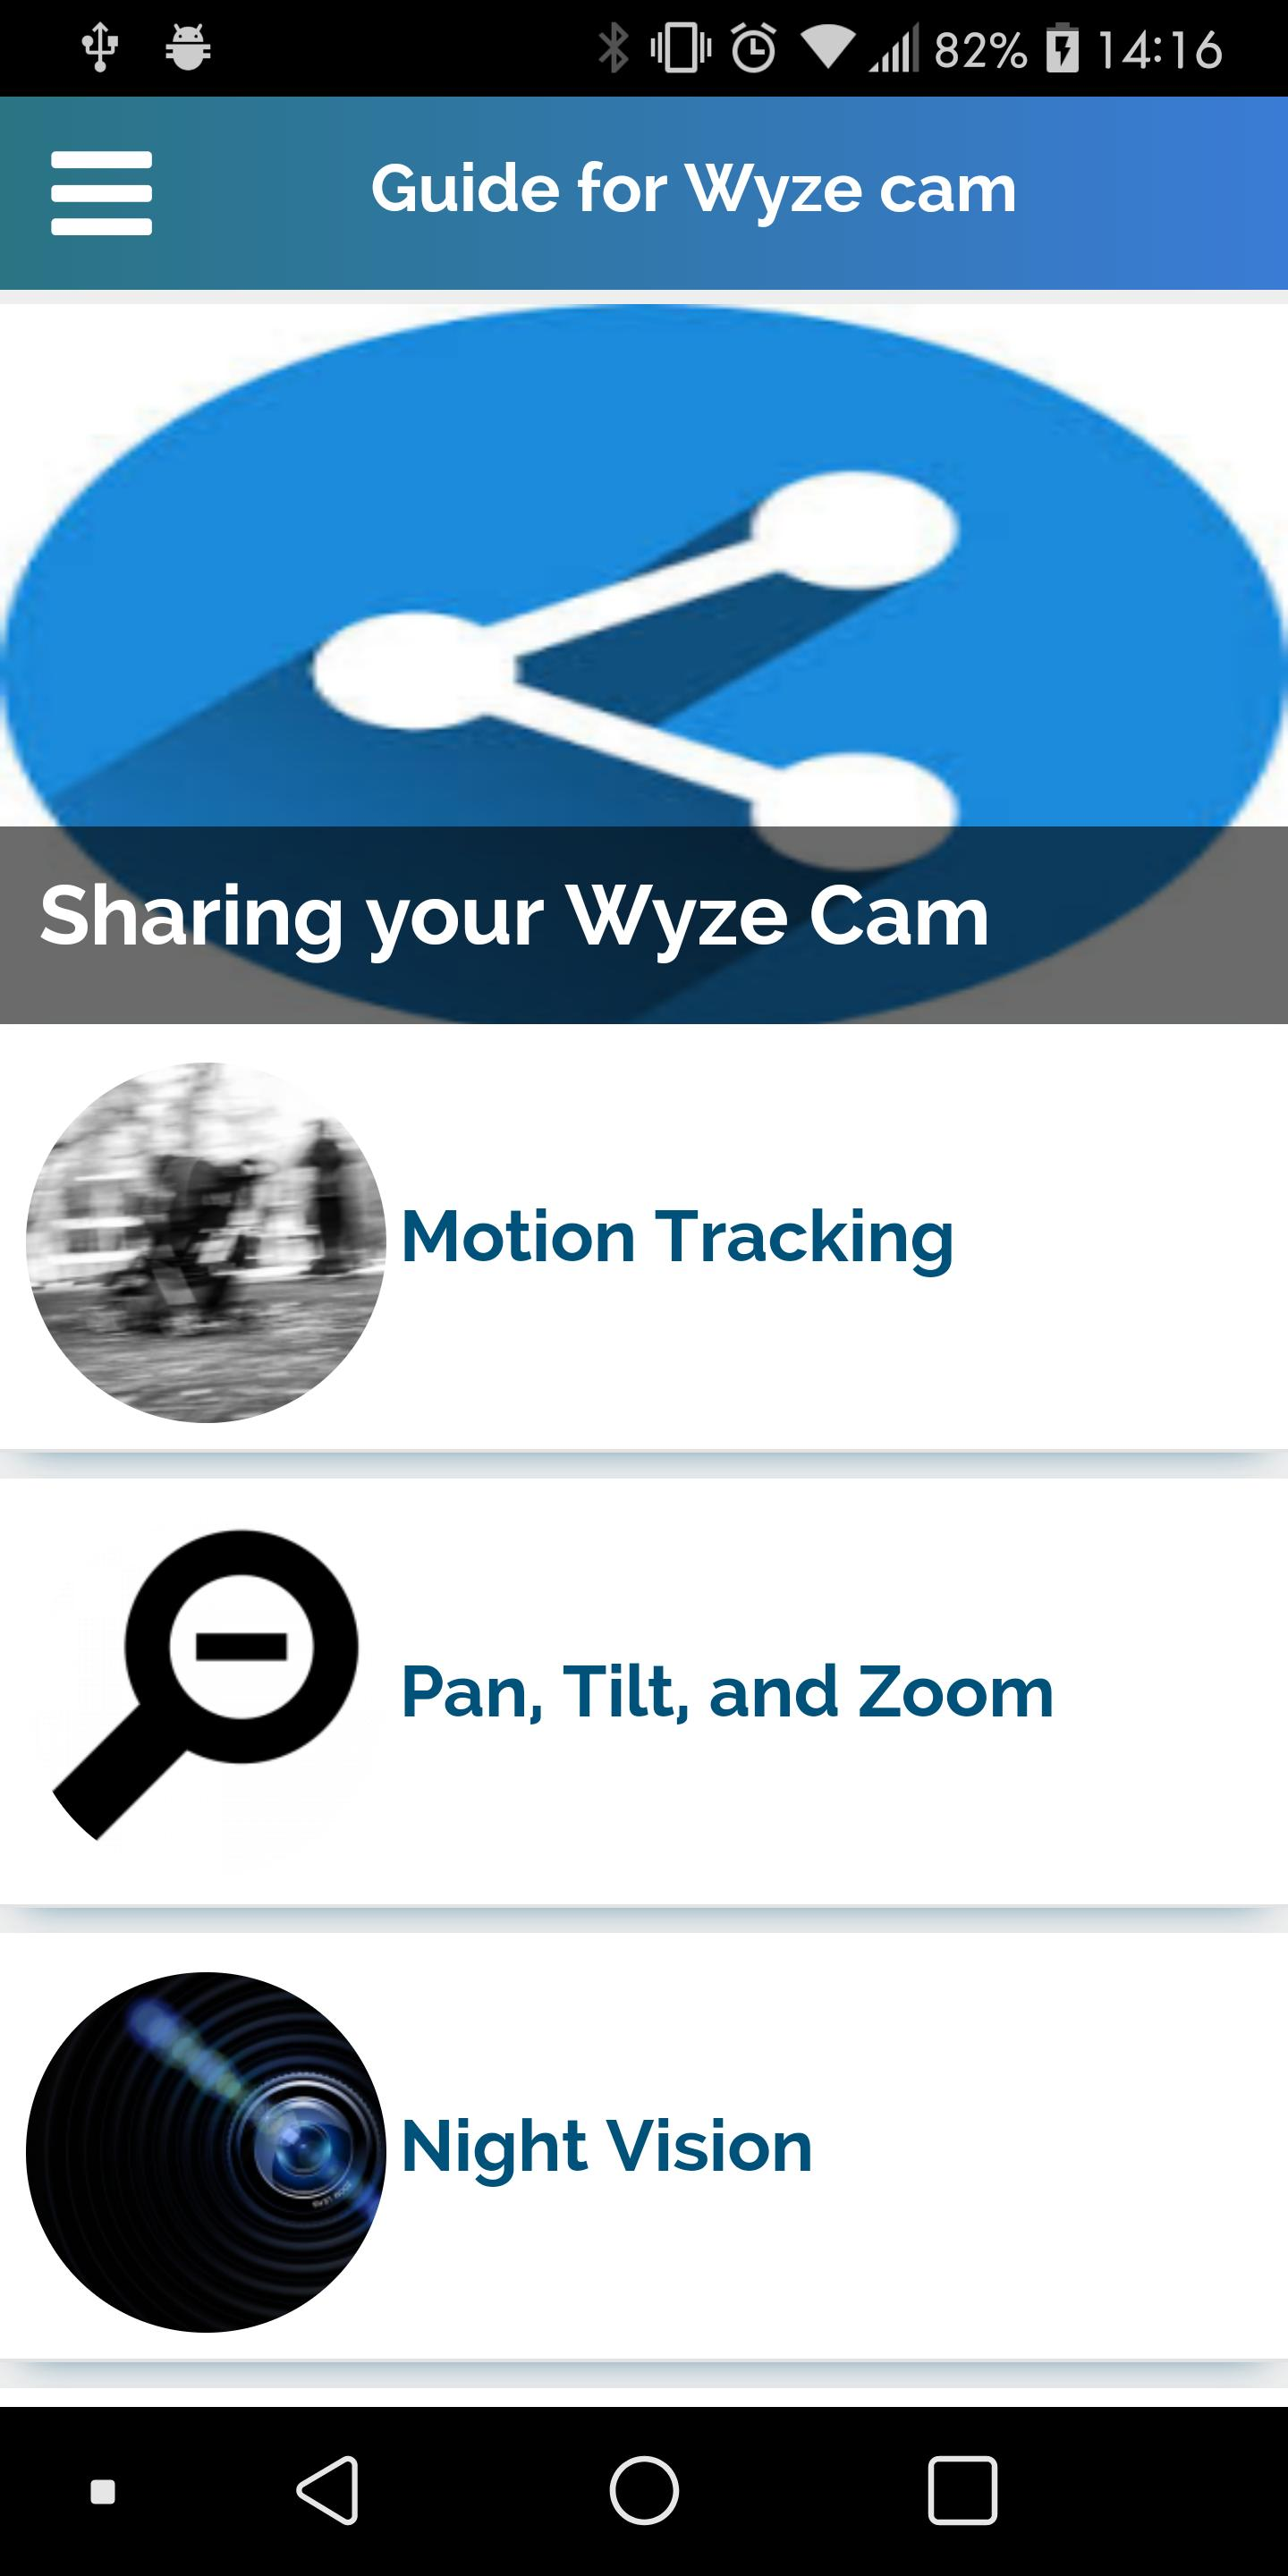 wyze apk download